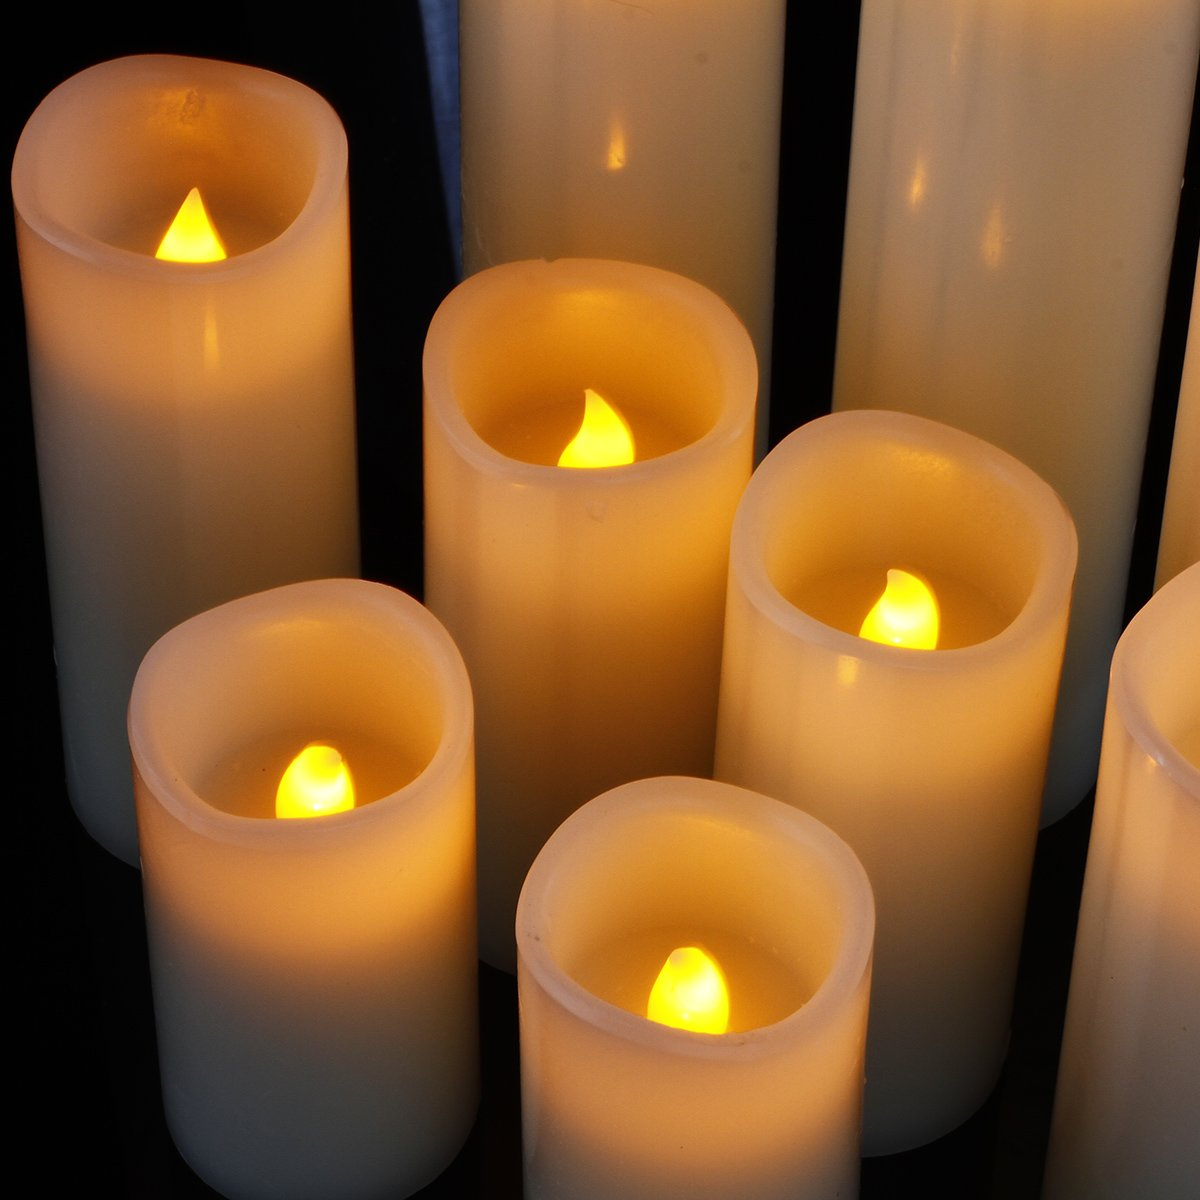 """comenzar Flameless Candles, Battery Candles Set of 9(H 4"""" 5"""" 6"""" 7"""" 8"""" 9"""" xD 2.2"""") Ivory Real Wax Pillar Candles With Remote Timer by (Batteries not included)"""